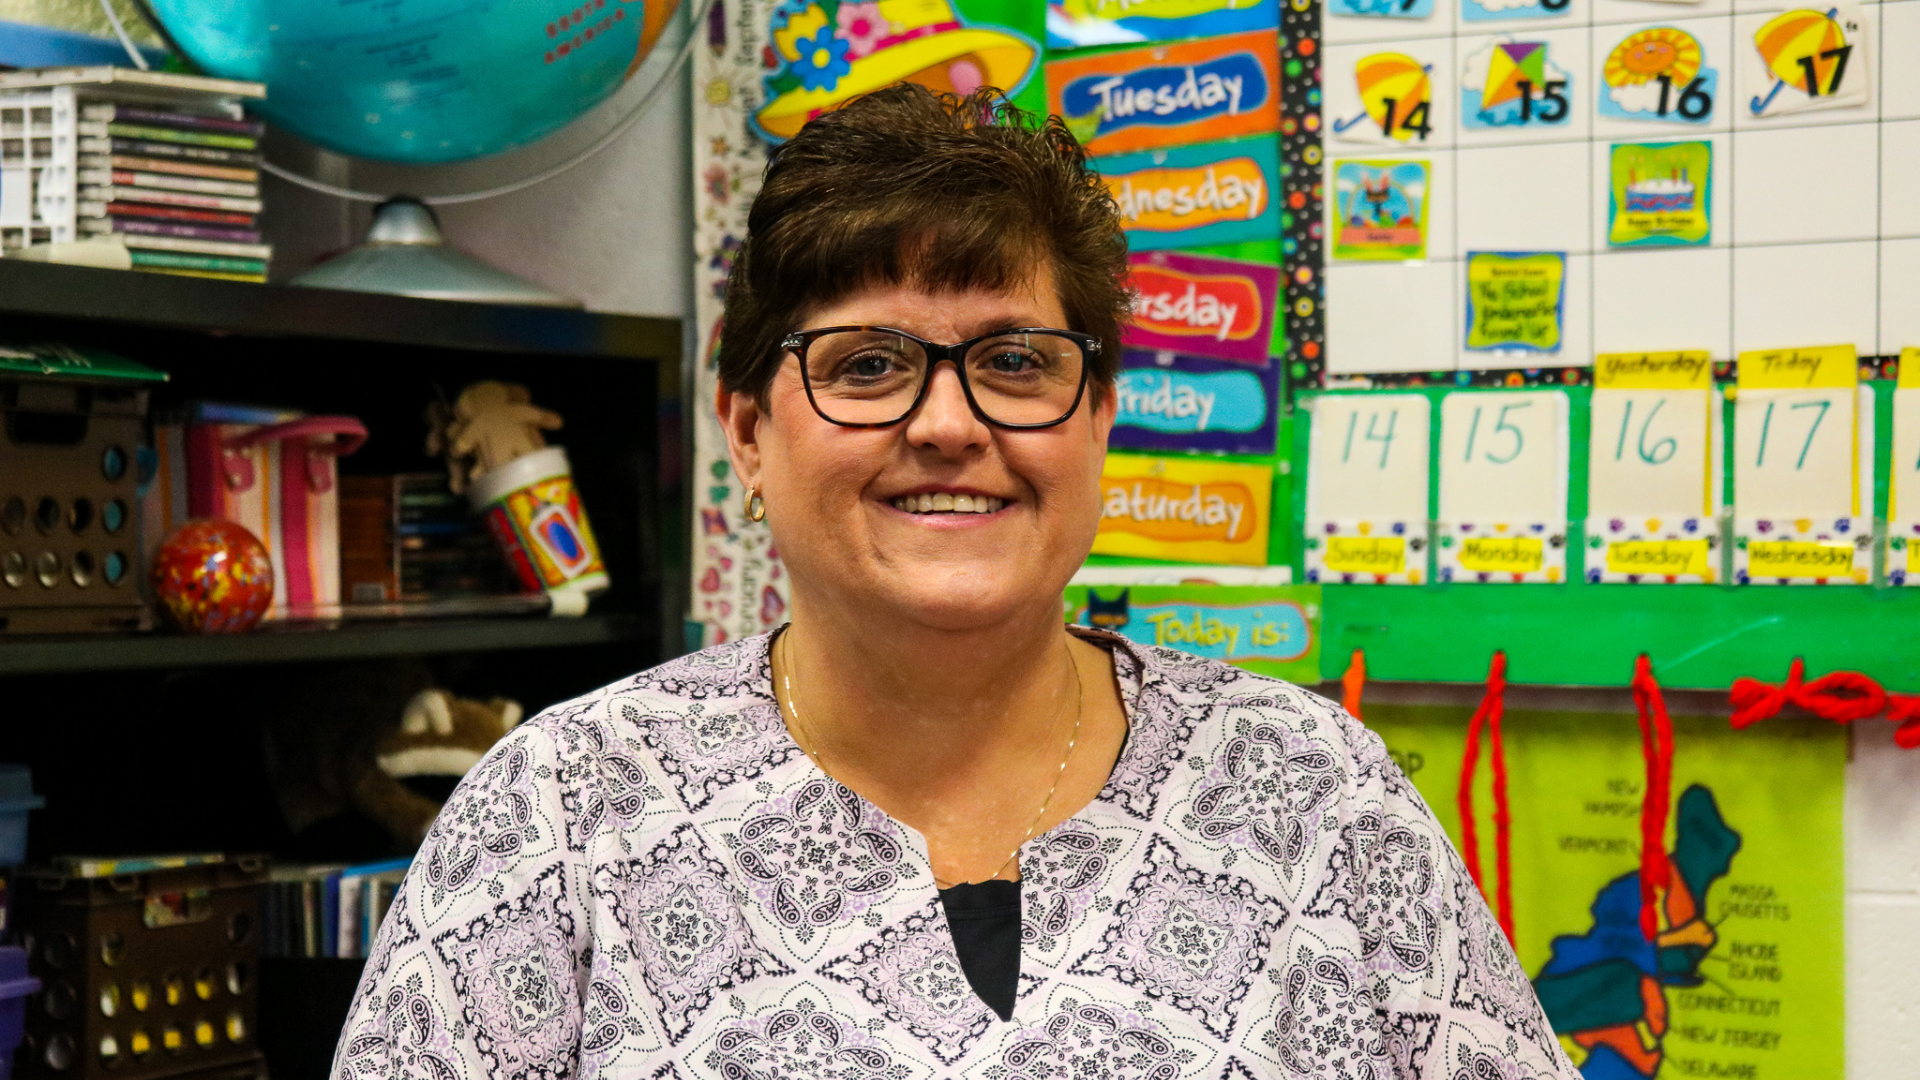 Teacher of the year, Jen Melero, stands smiling in her classroom